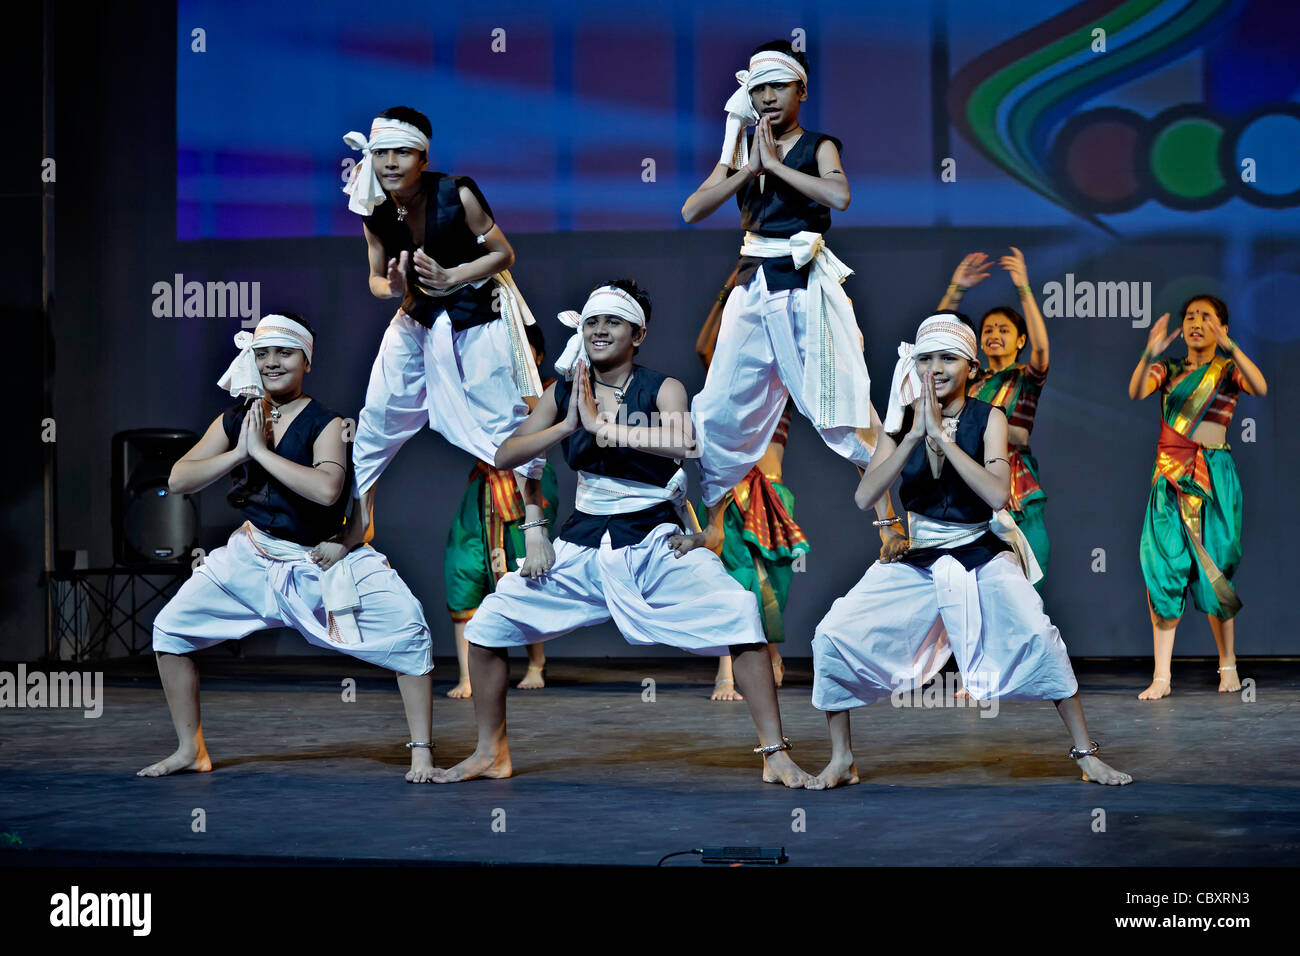 15b8712a6aa72 Indian Children Performing Traditional Dance Stock Photos & Indian ...